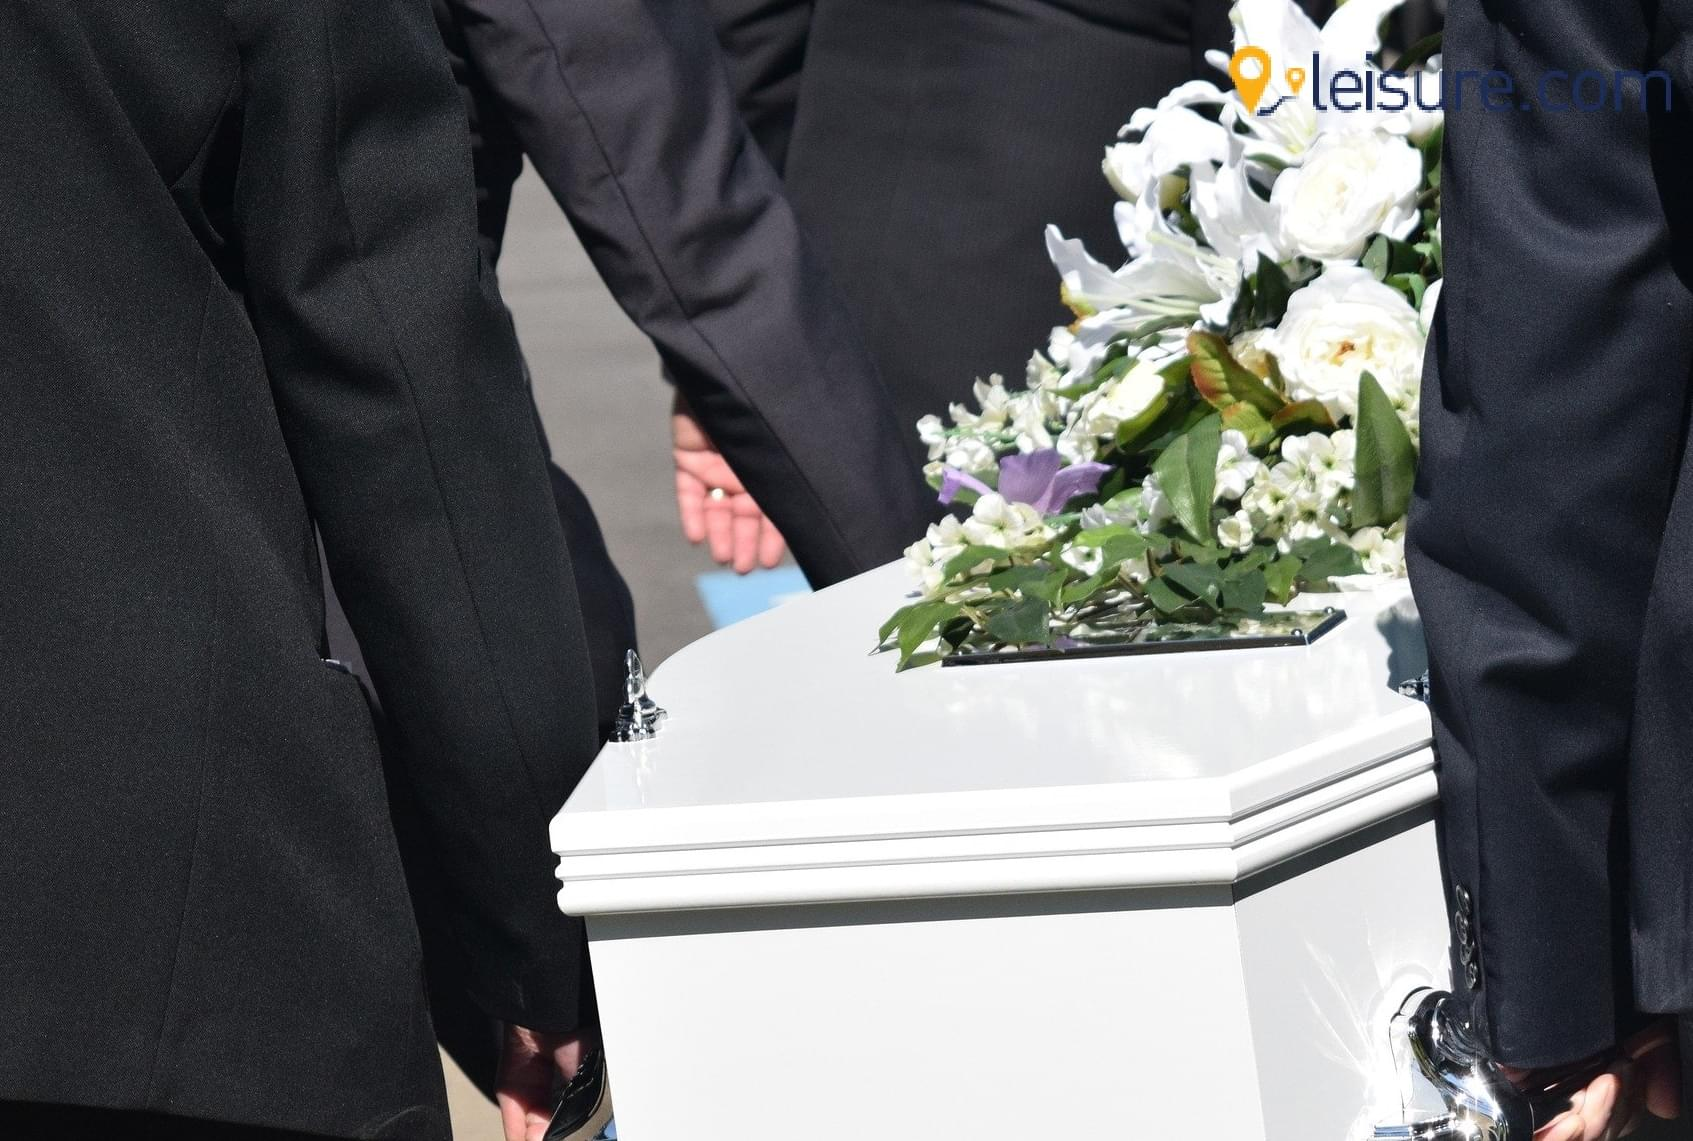 Unusual Funeral Traditions from Around the Globe